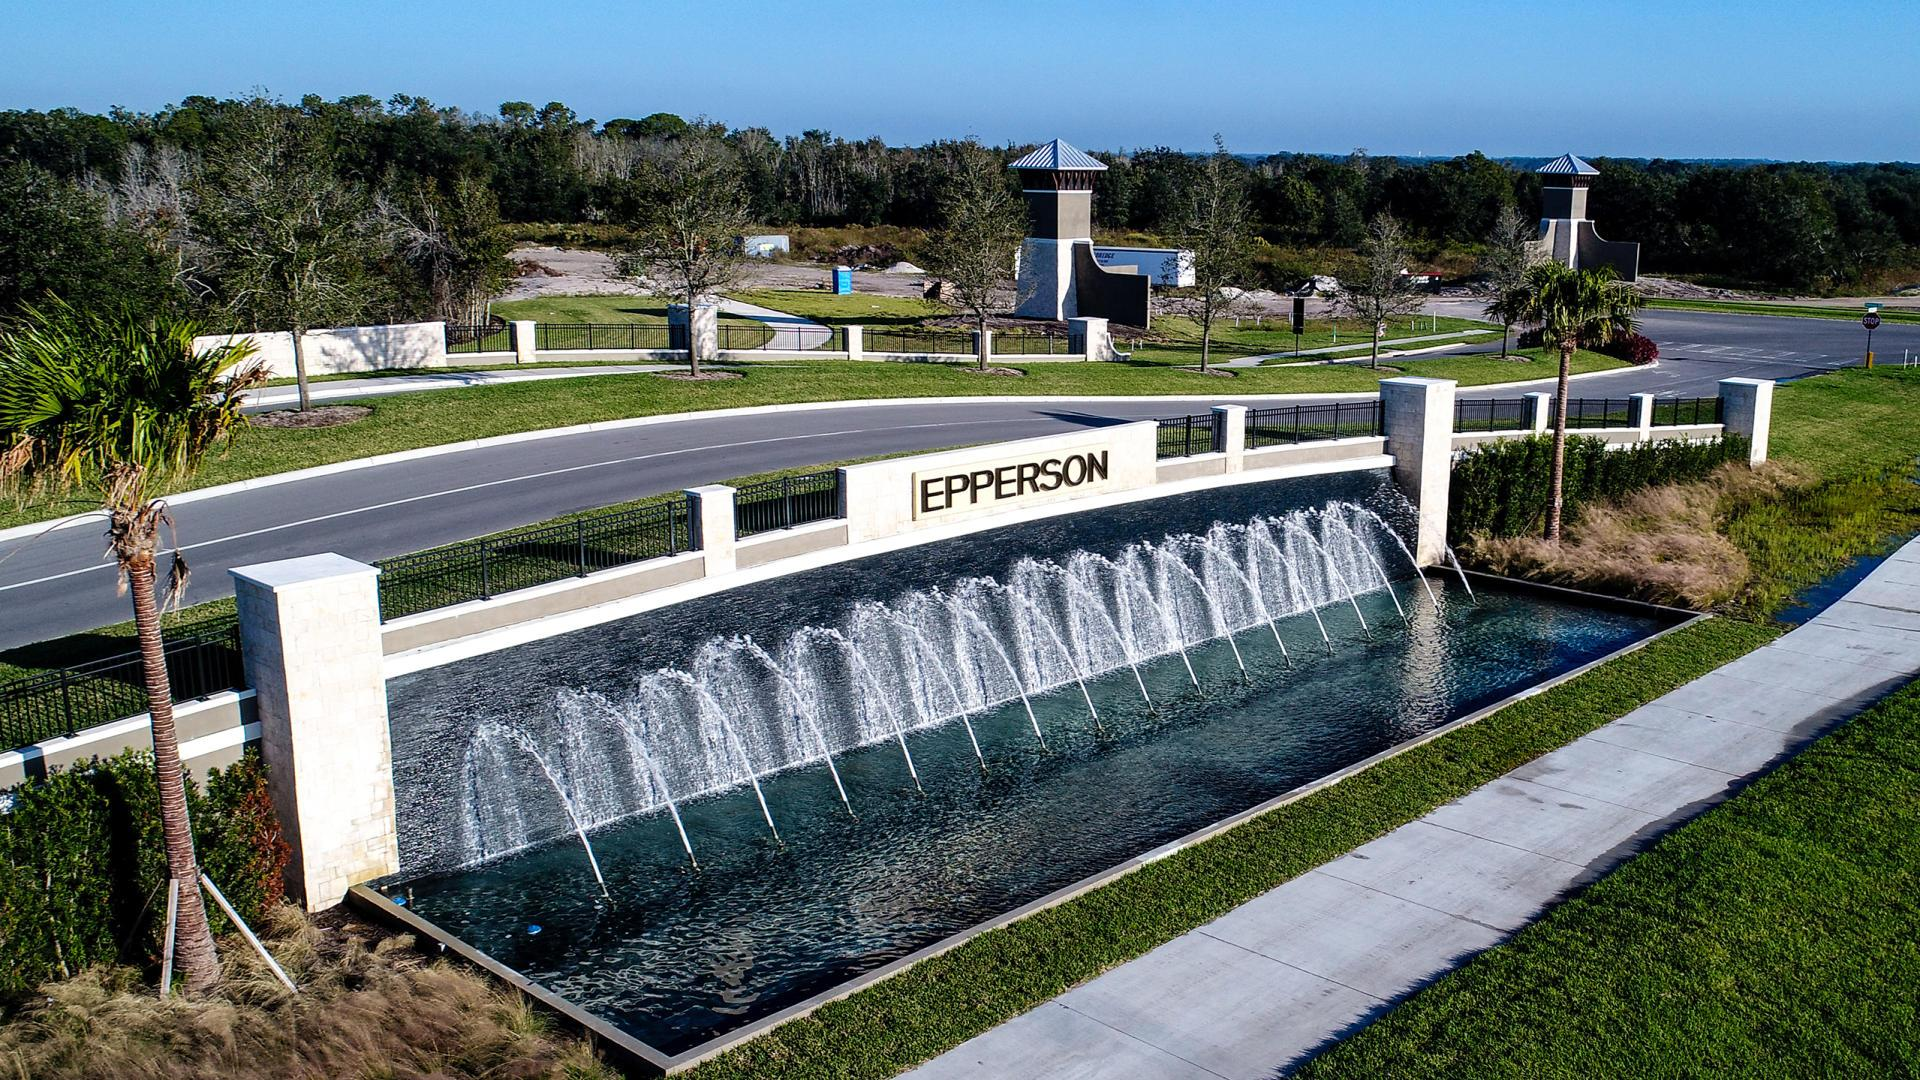 'Epperson' by MARONDA - TAMPA NORTH in Tampa-St. Petersburg